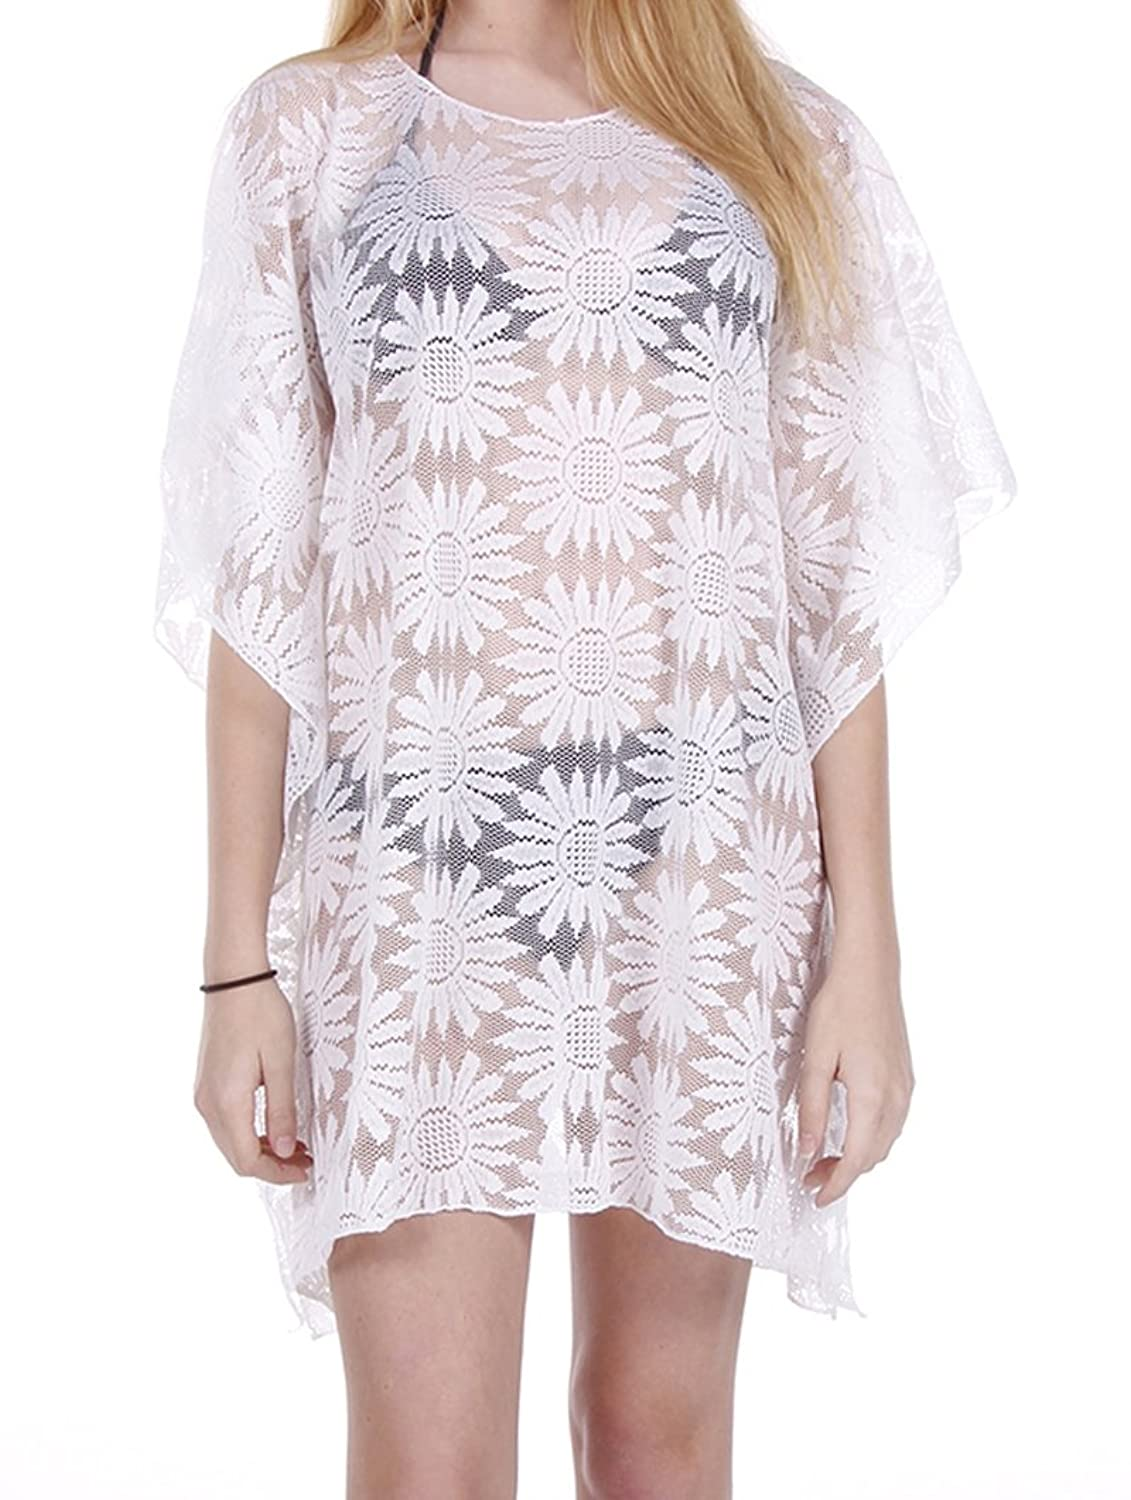 Parisian Chic Scarf Floral Pattern Lace Sheer Coverup Poncho One Size Swimwear White